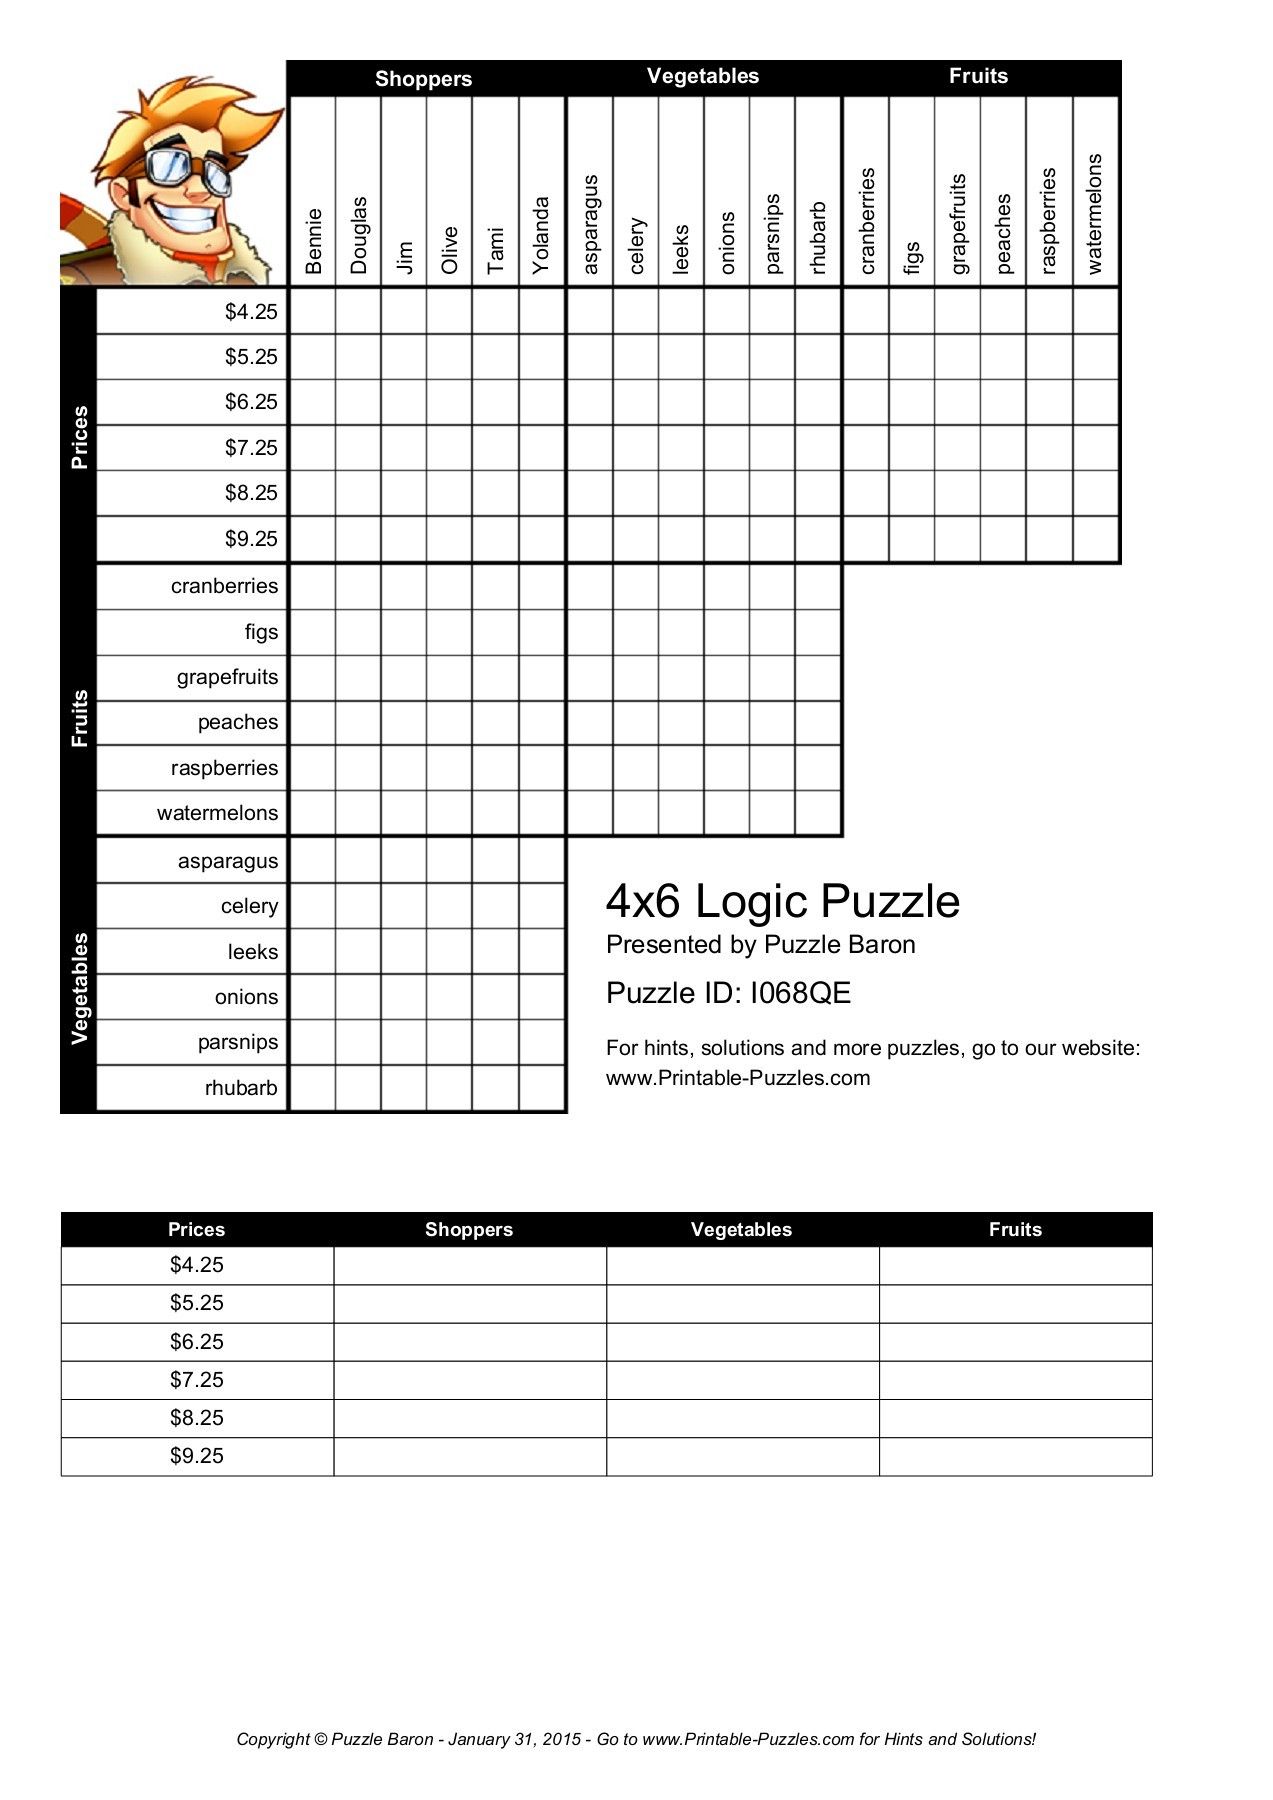 4X6 Logic Puzzle - Logic Puzzles - Play Online Or Print  Pages 1 - Printable-Puzzles.com Answers